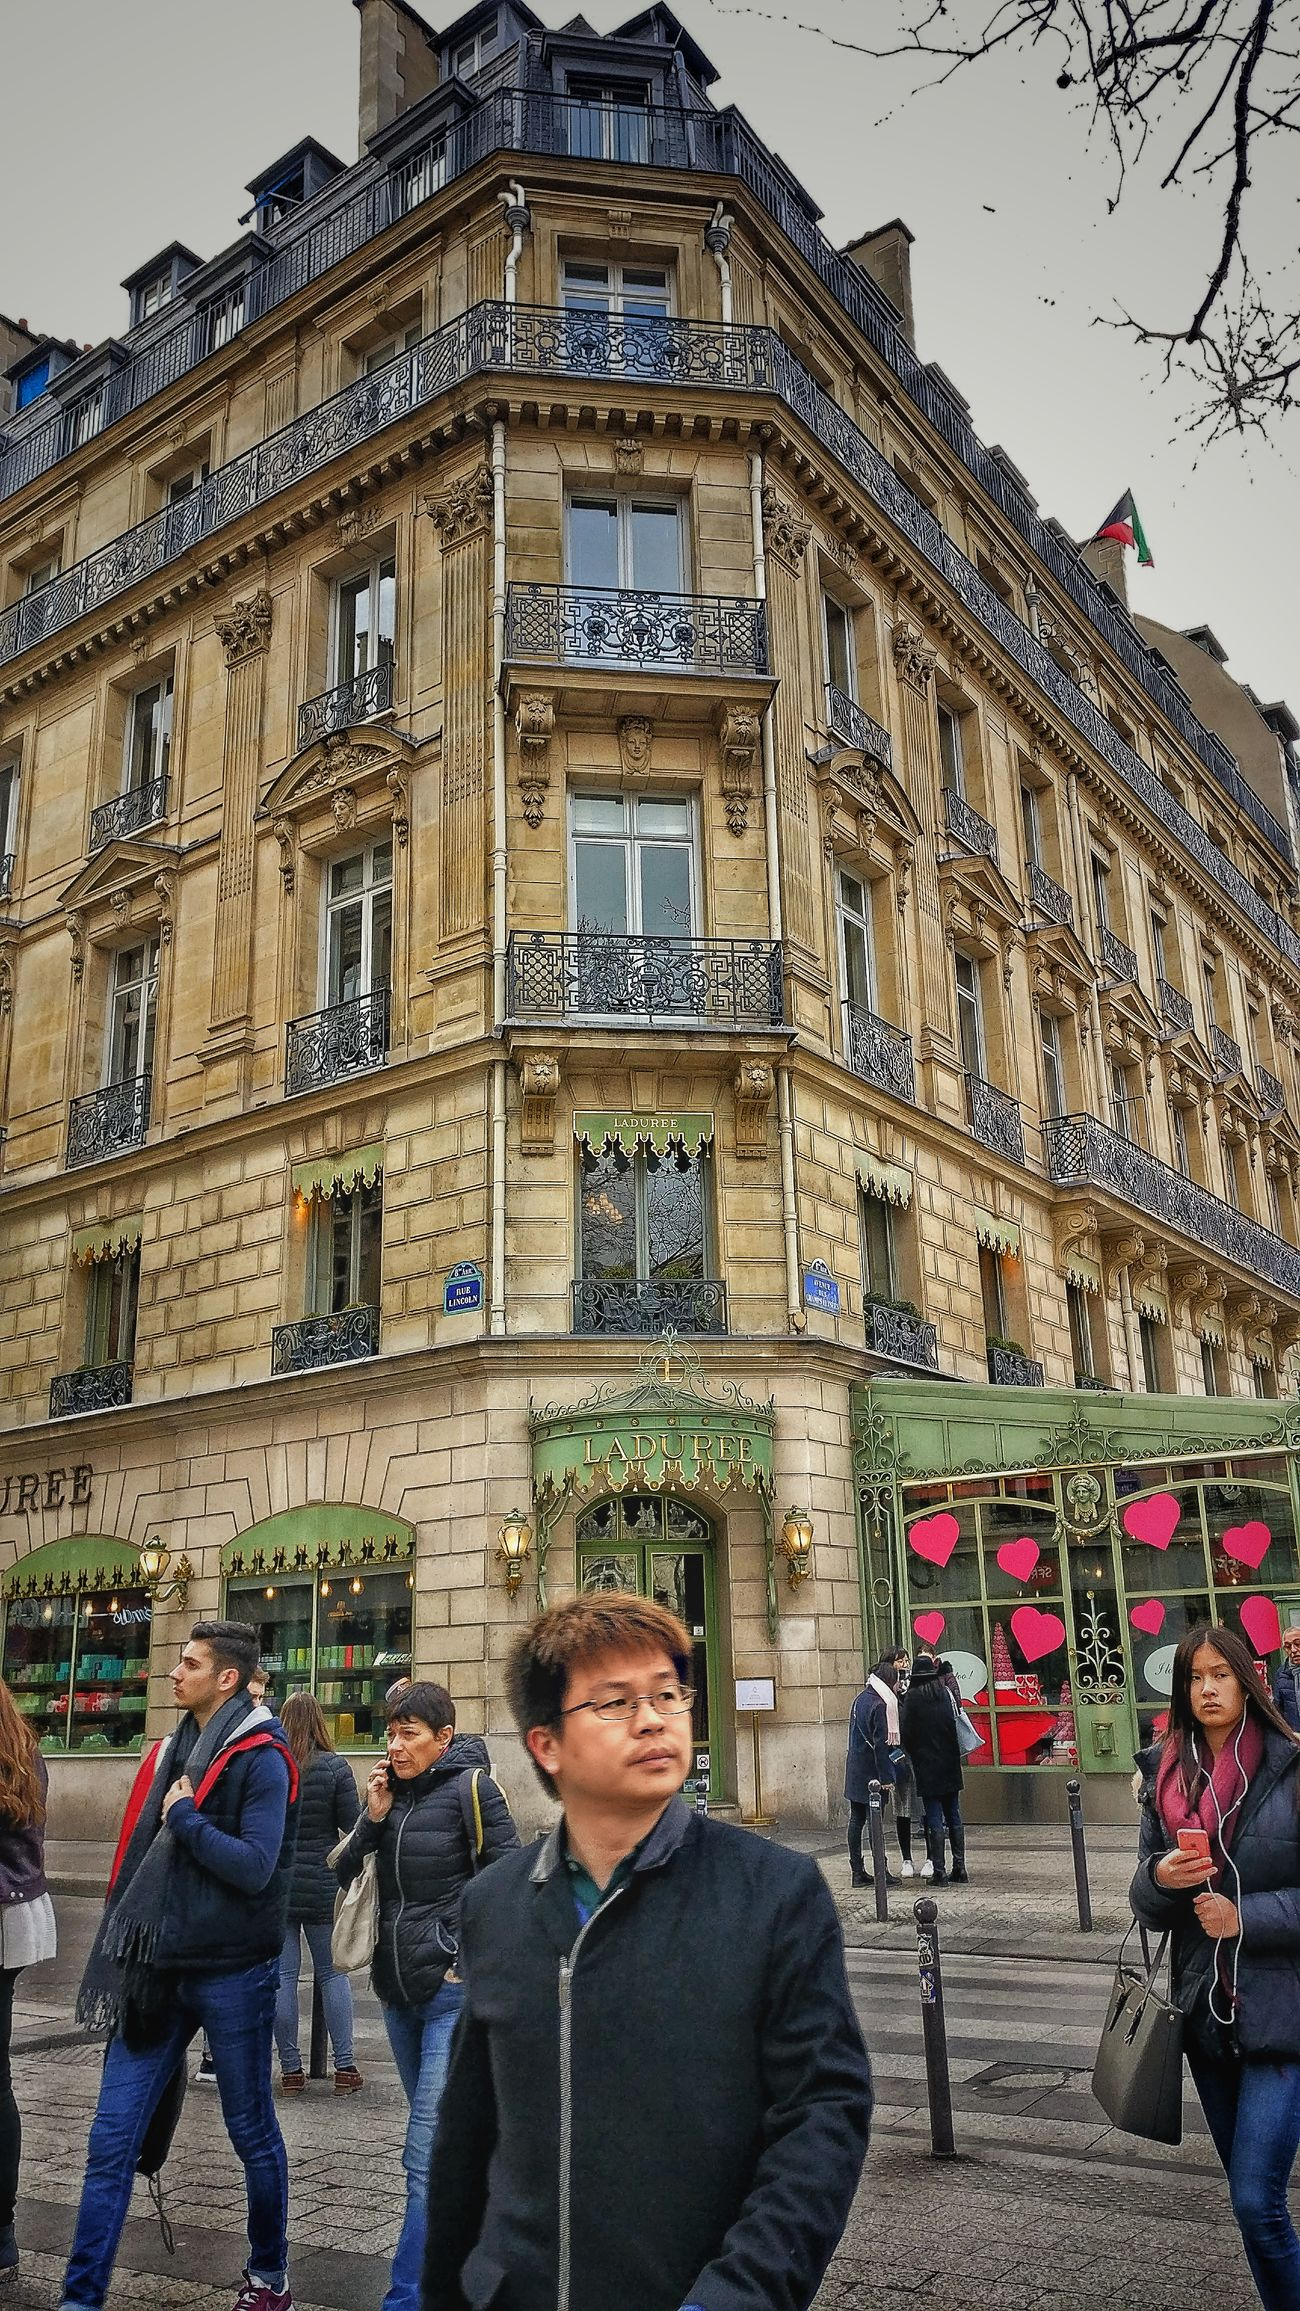 Building Exterior Architecture Built Structure City People Real People Day Adult Adults Only Champselysées Plus Belle Avenue Du Monde AndroidPhotography PhonePhotography France 🇫🇷 OneplusShot Oneplus3 Snapseed Paris Architecture